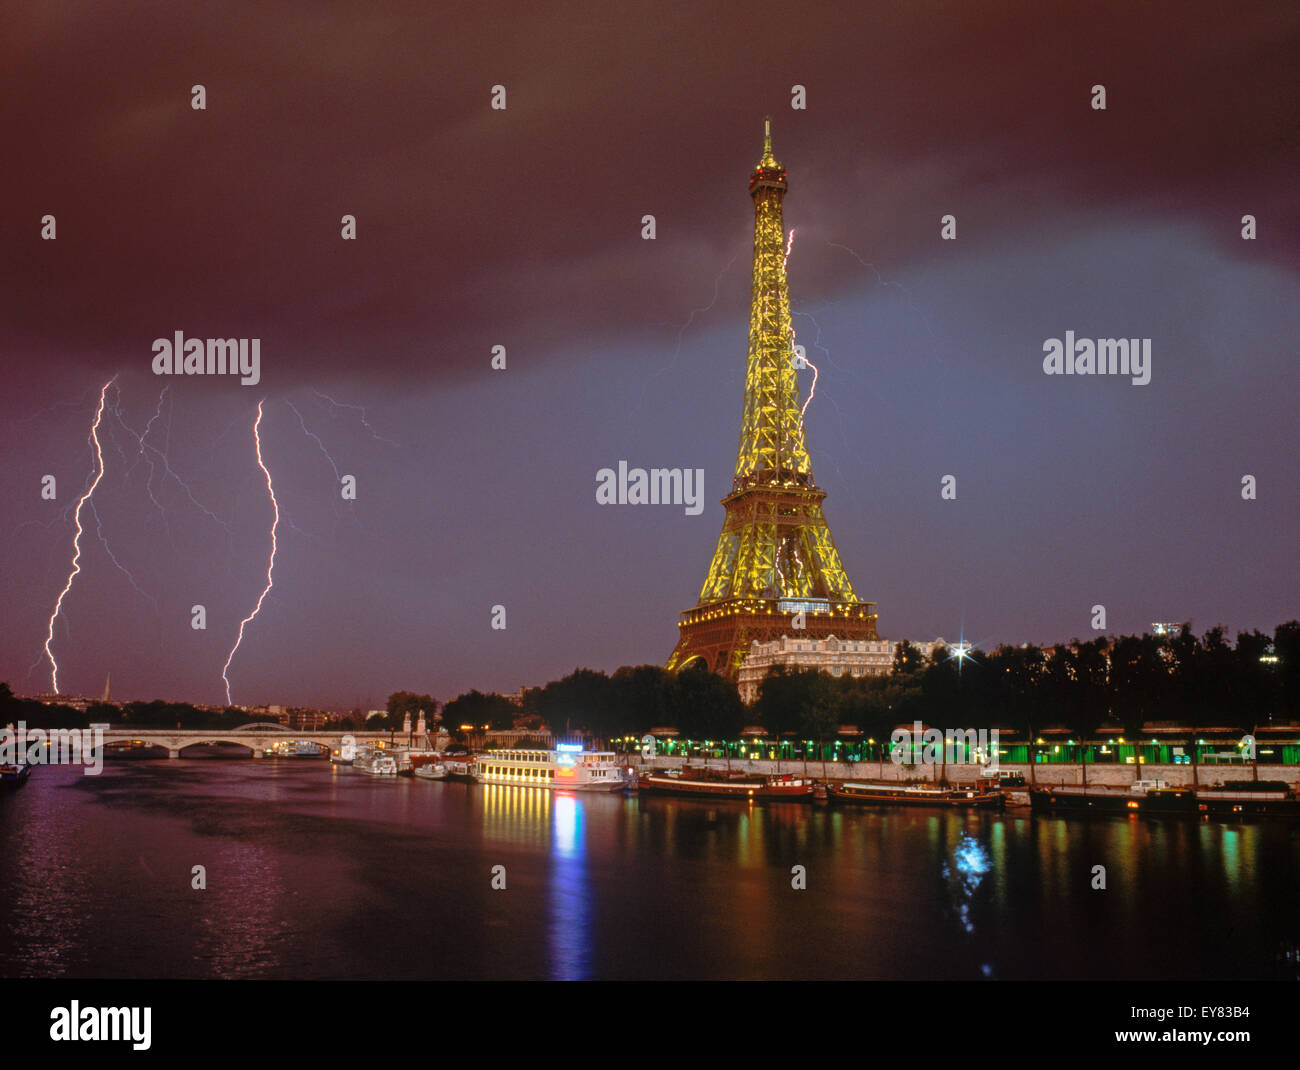 Lightning bolt and storm over Paris at night with Eiffel Tower and River Seine.  This image is not digitally enhanced. - Stock Image